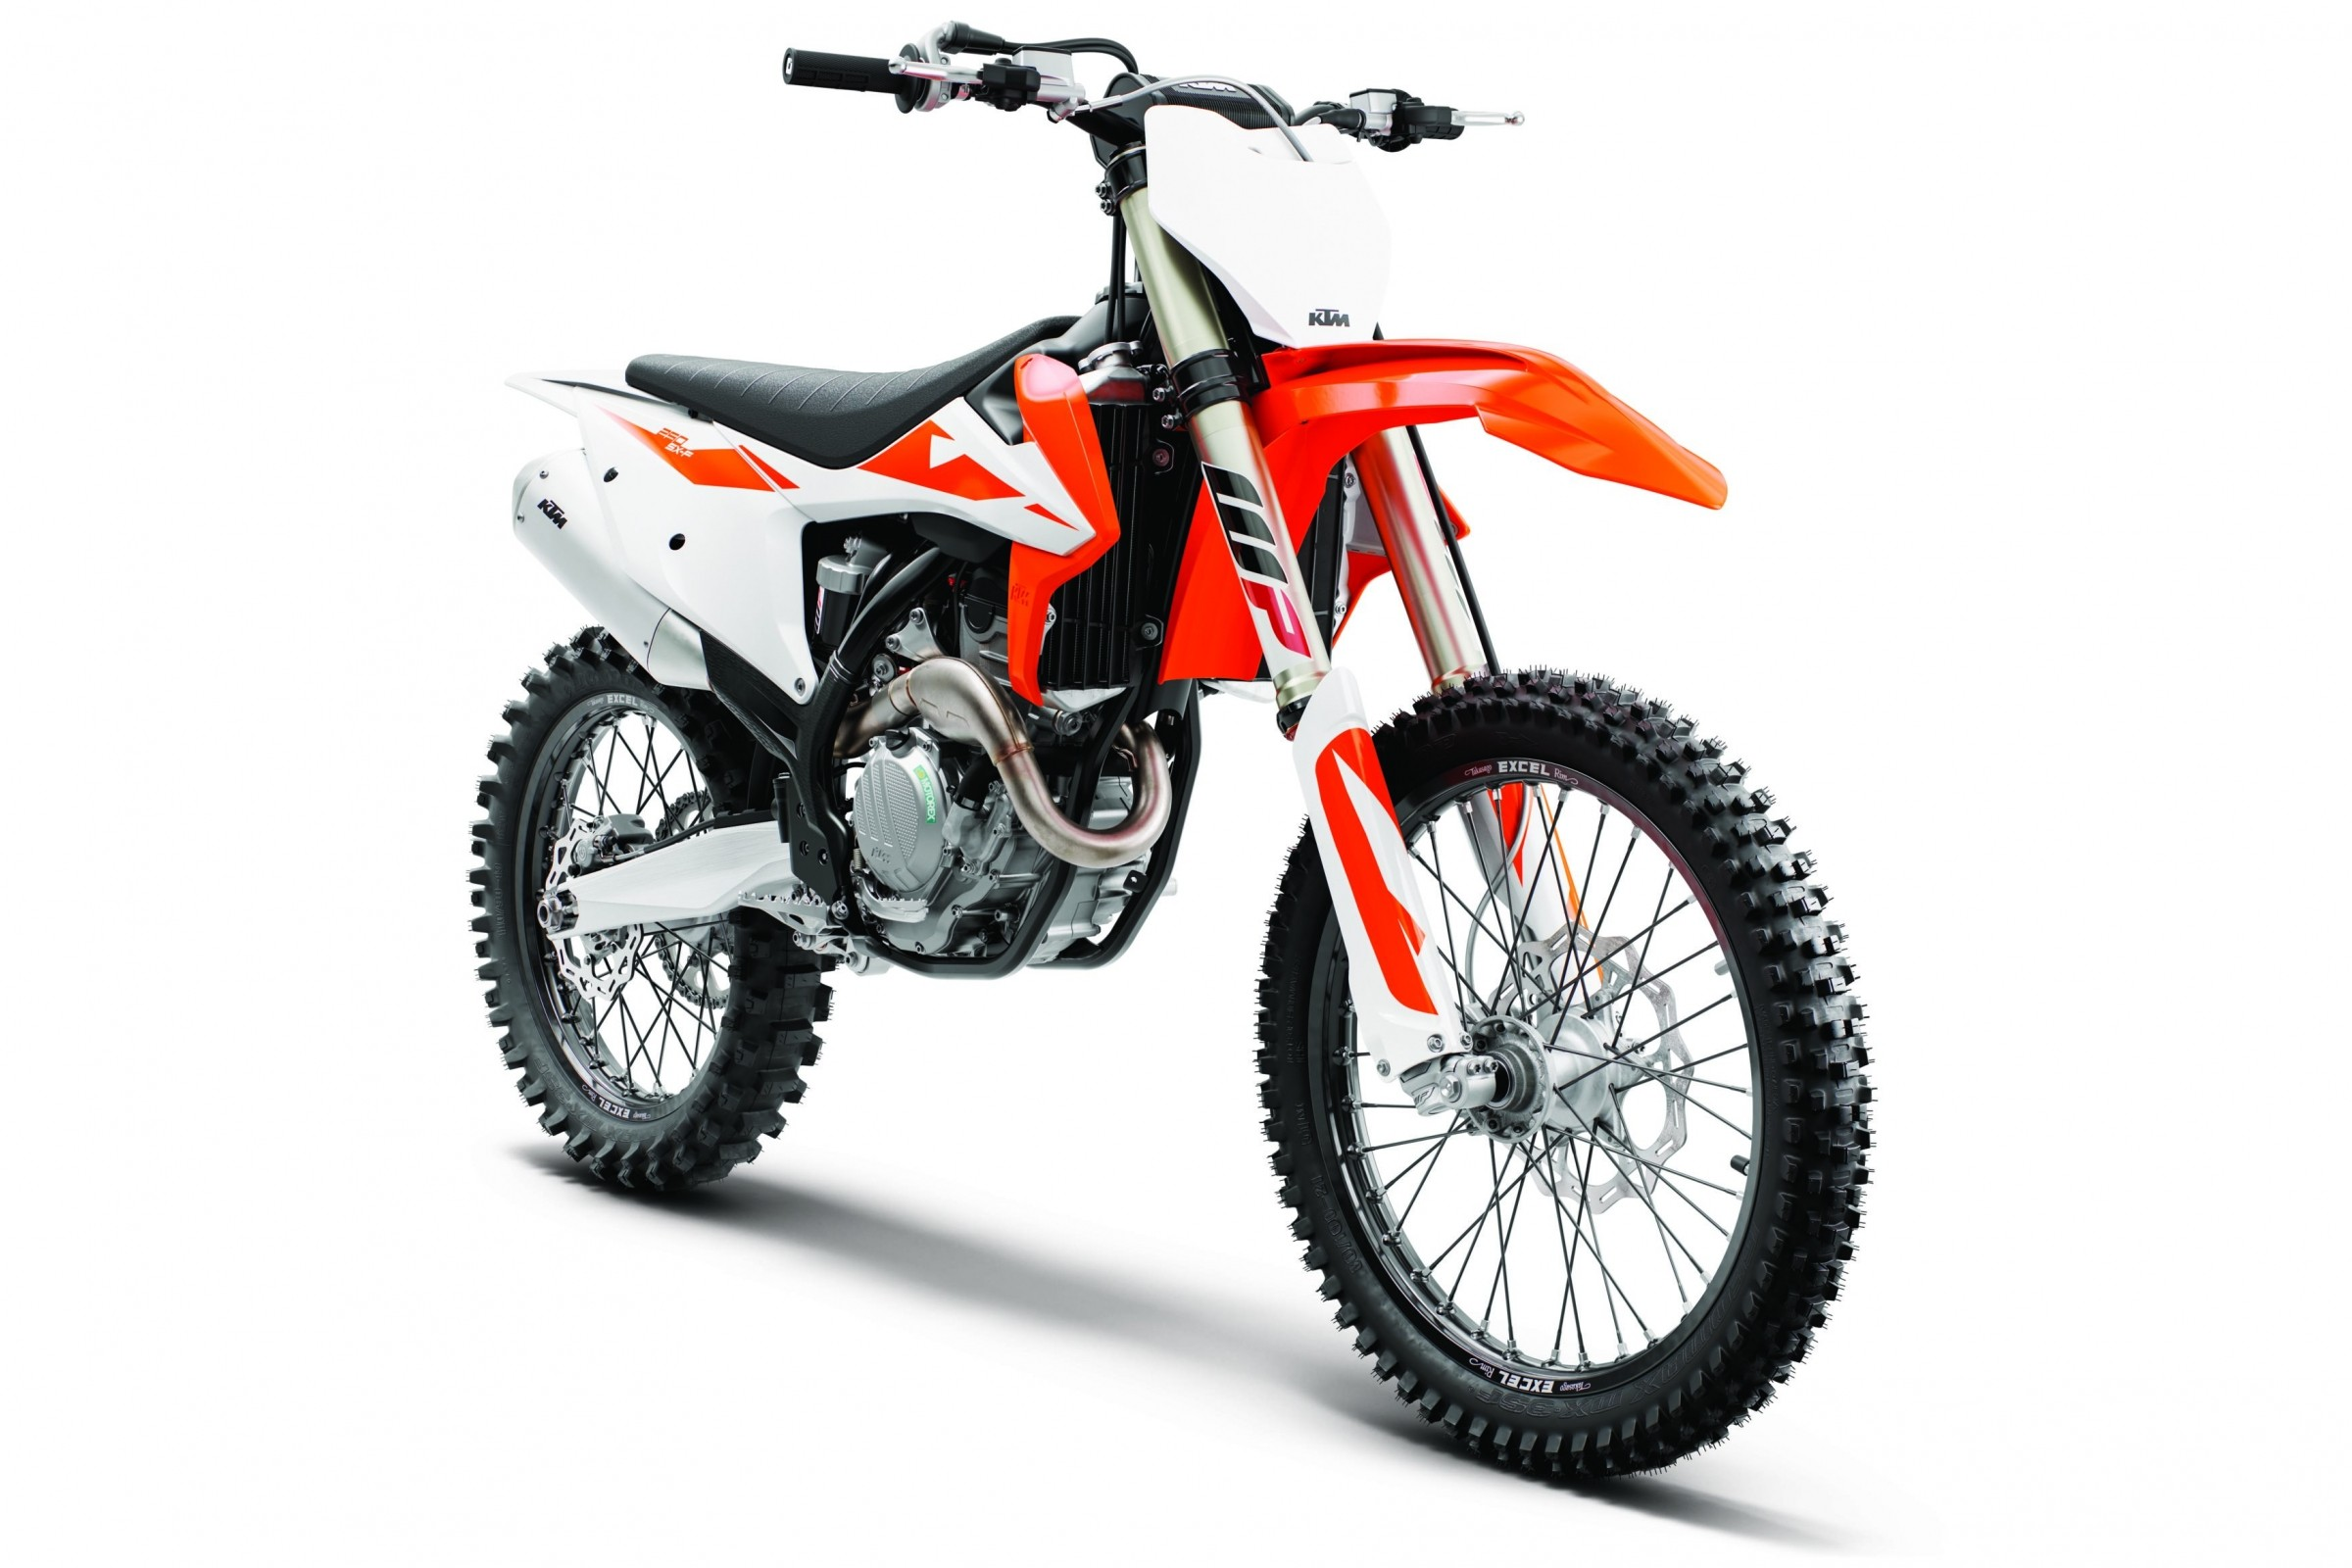 Ktm 85 Wiring Diagram Tpi Fan Motor Diagrams Schema Exc 300 2003 Releases 2019 Models Racer X Online Suspension